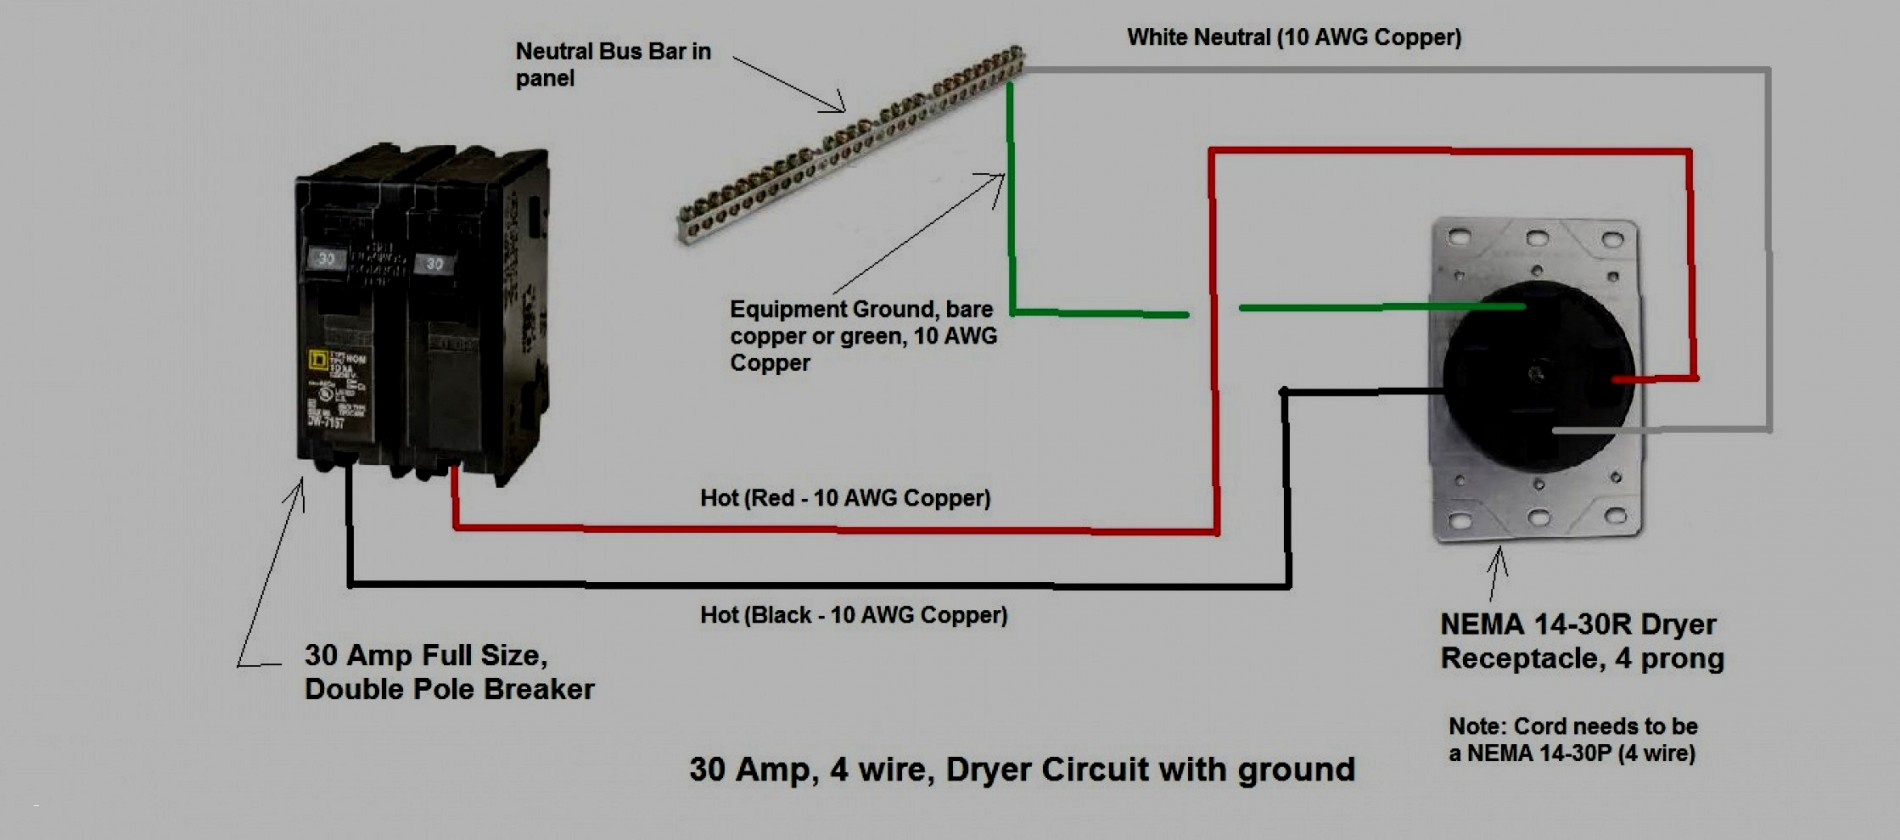 4 Wire Generator Plug Wiring For 30 Amp | Wiring Diagram - 4 Prong Generator Plug Wiring Diagram